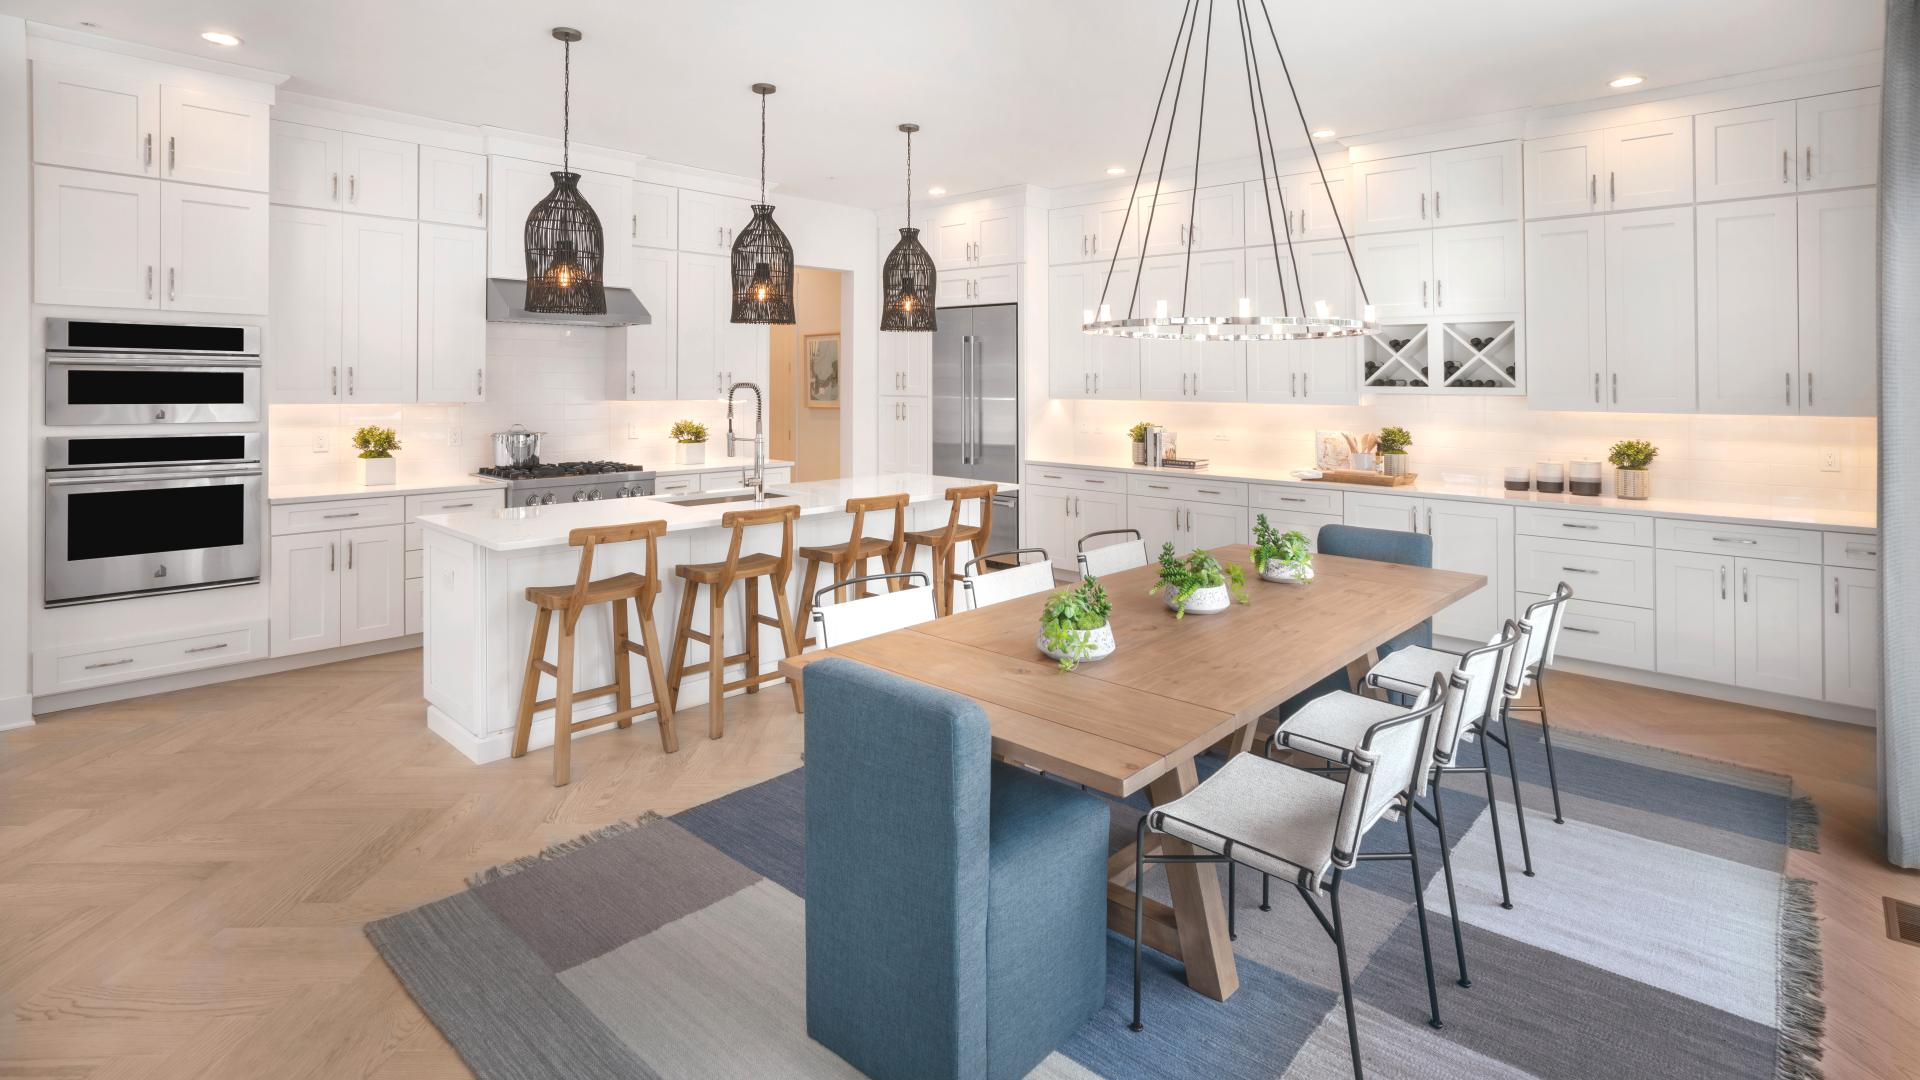 Wetherbee kitchen and dining